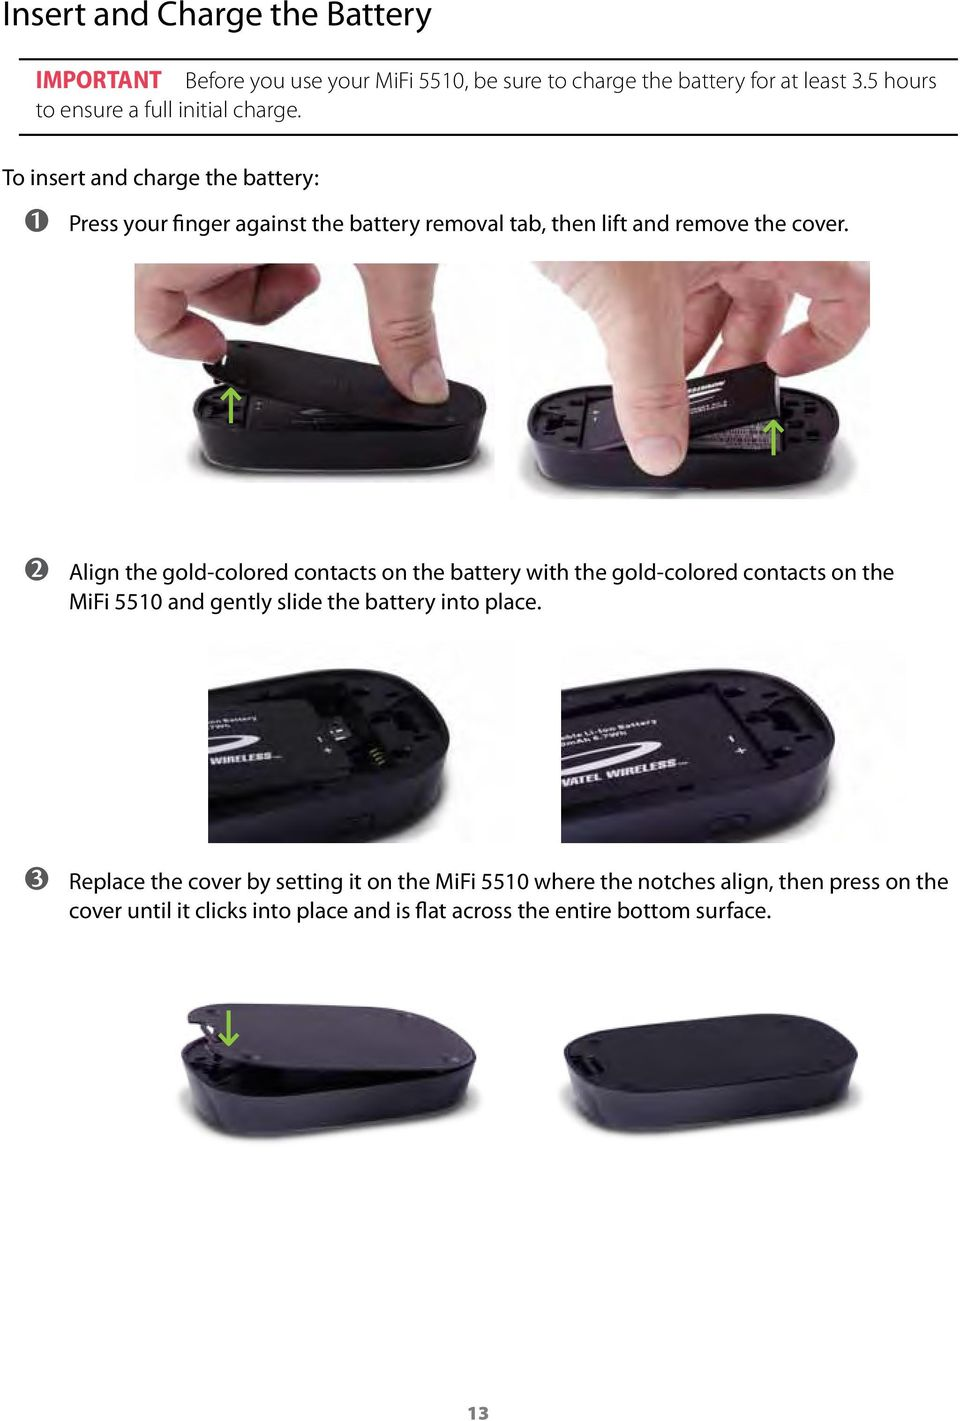 To insert and charge the battery: ➊➊ Press your finger against the battery removal tab, then lift and remove the cover.